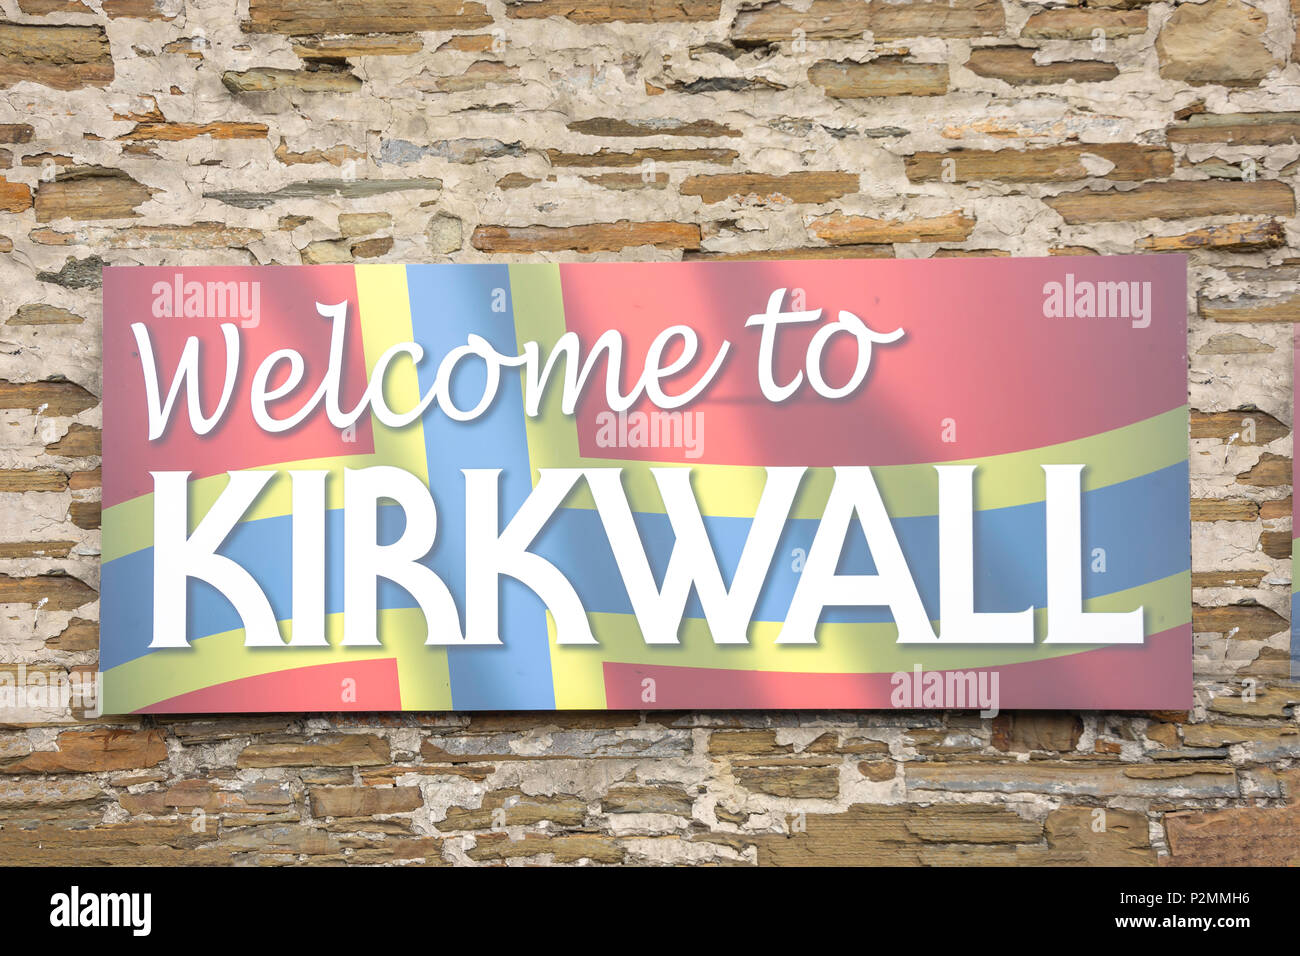 'Welcome to Kirkwall' sign at bus station, Kirkwall, Mainland, Orkney Islands, Northern Isles, Scotland, United Kingdom - Stock Image